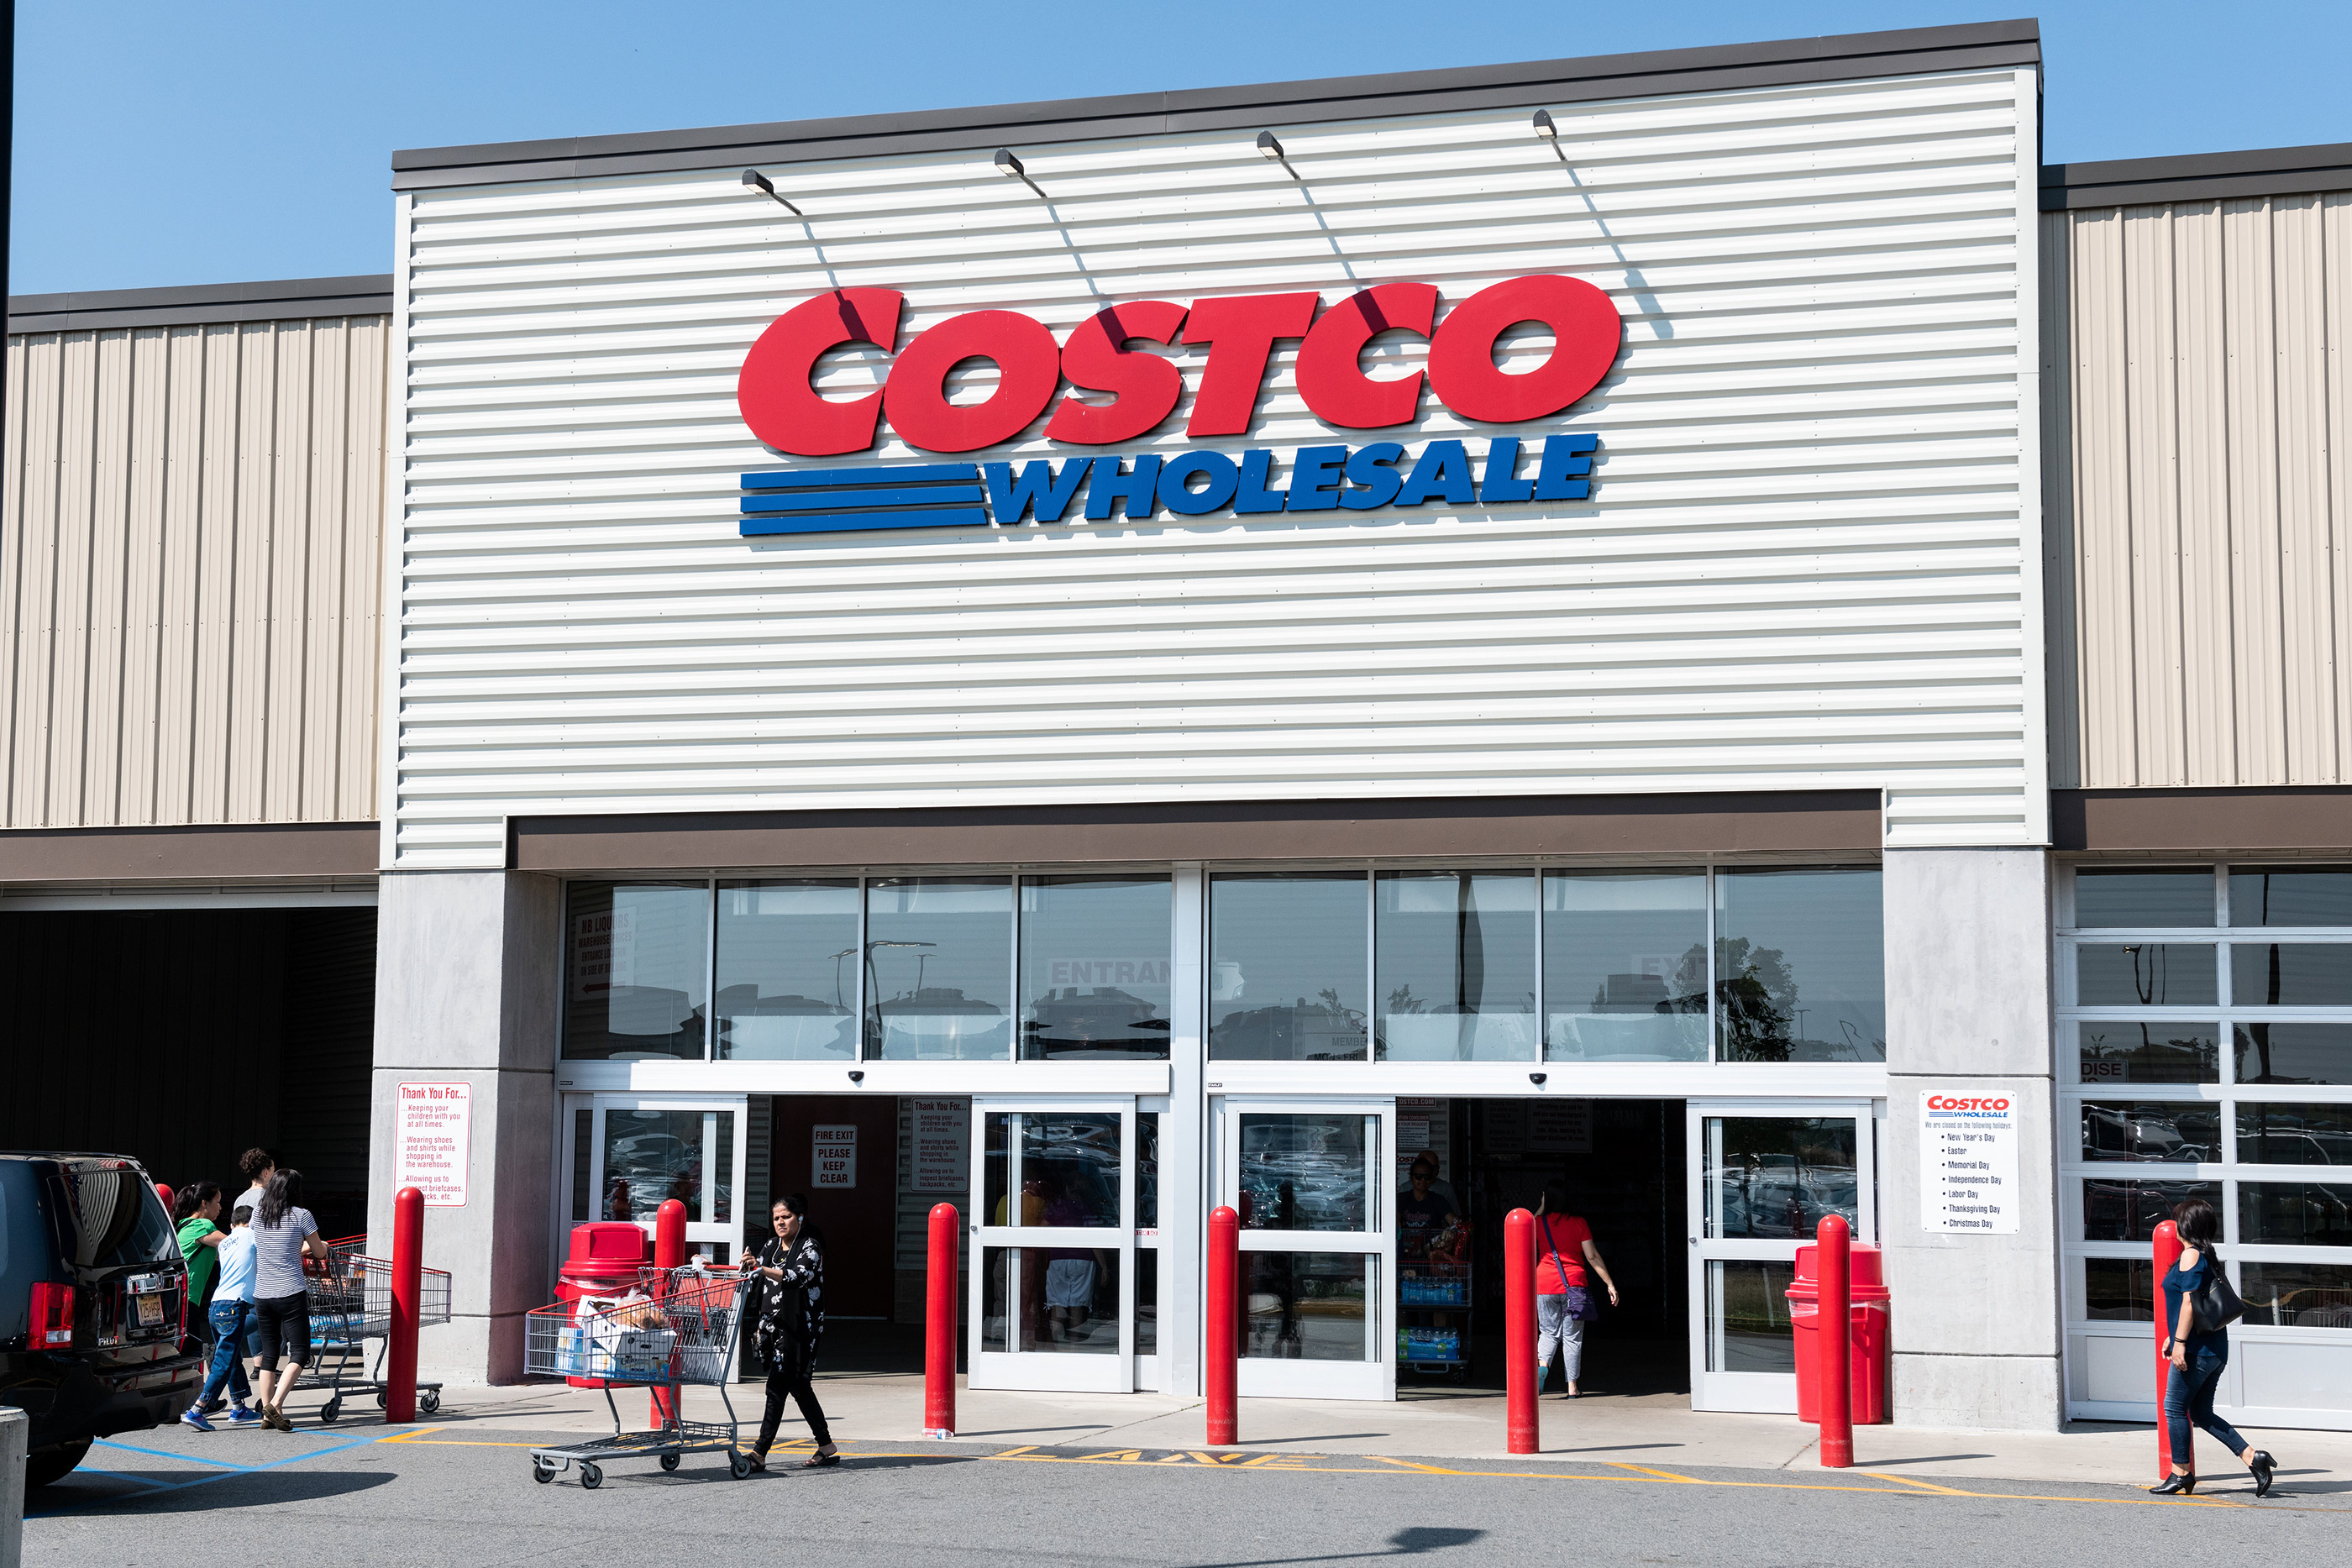 Costco store in Teterboro, New Jersey, August 5, 2018.